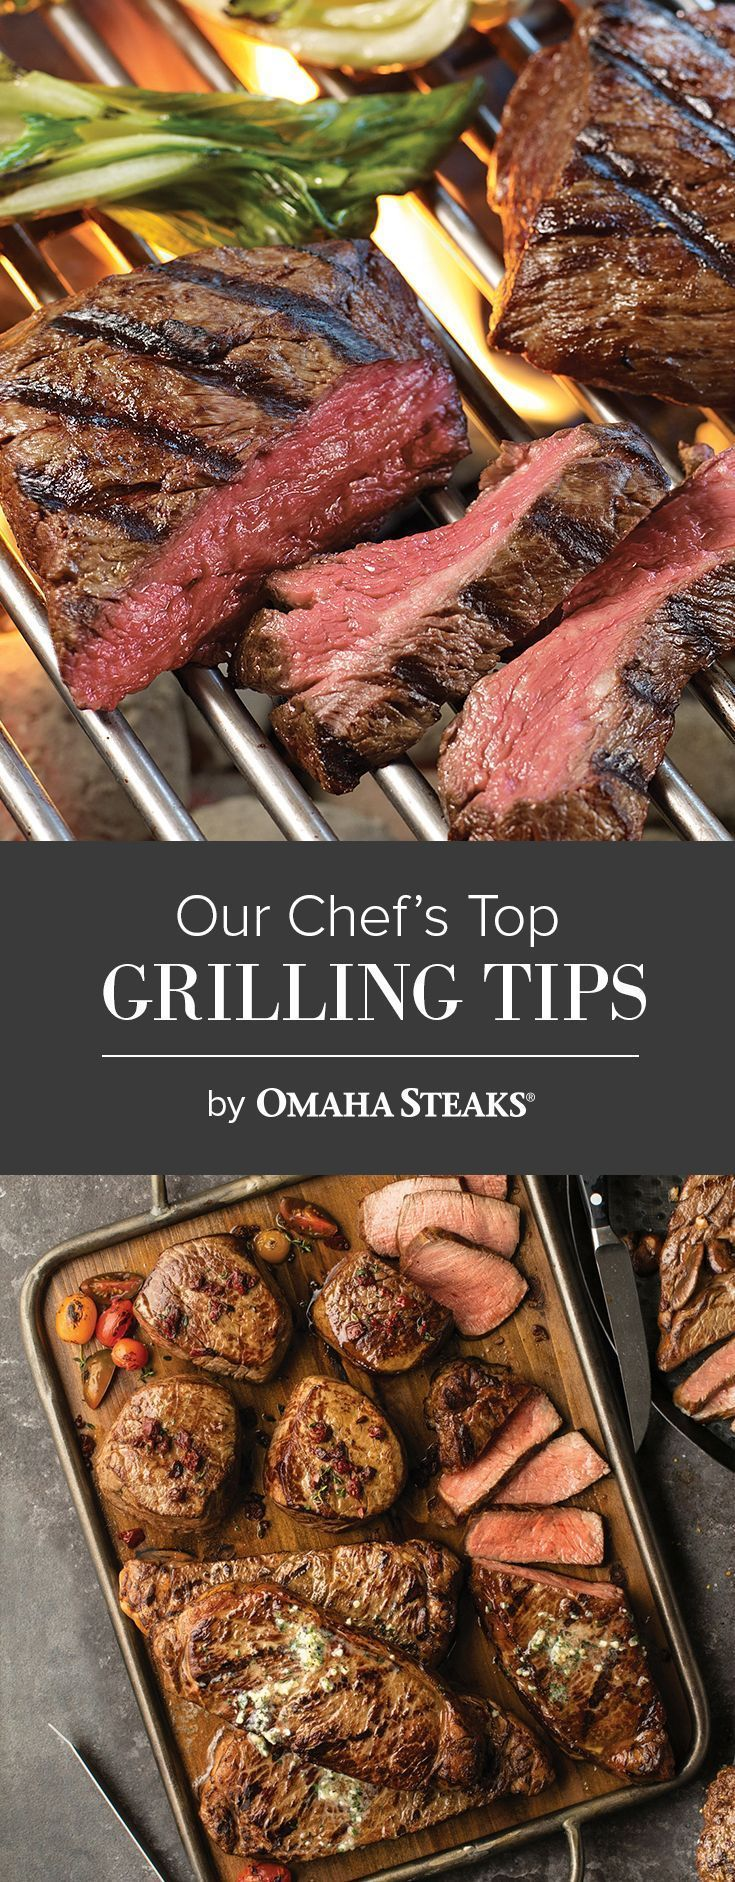 7 Steps To The Perfect Steak Howtogrilltheperfectsteak Cooking The Perfect Steak How To Grill Steak Perfect Steak